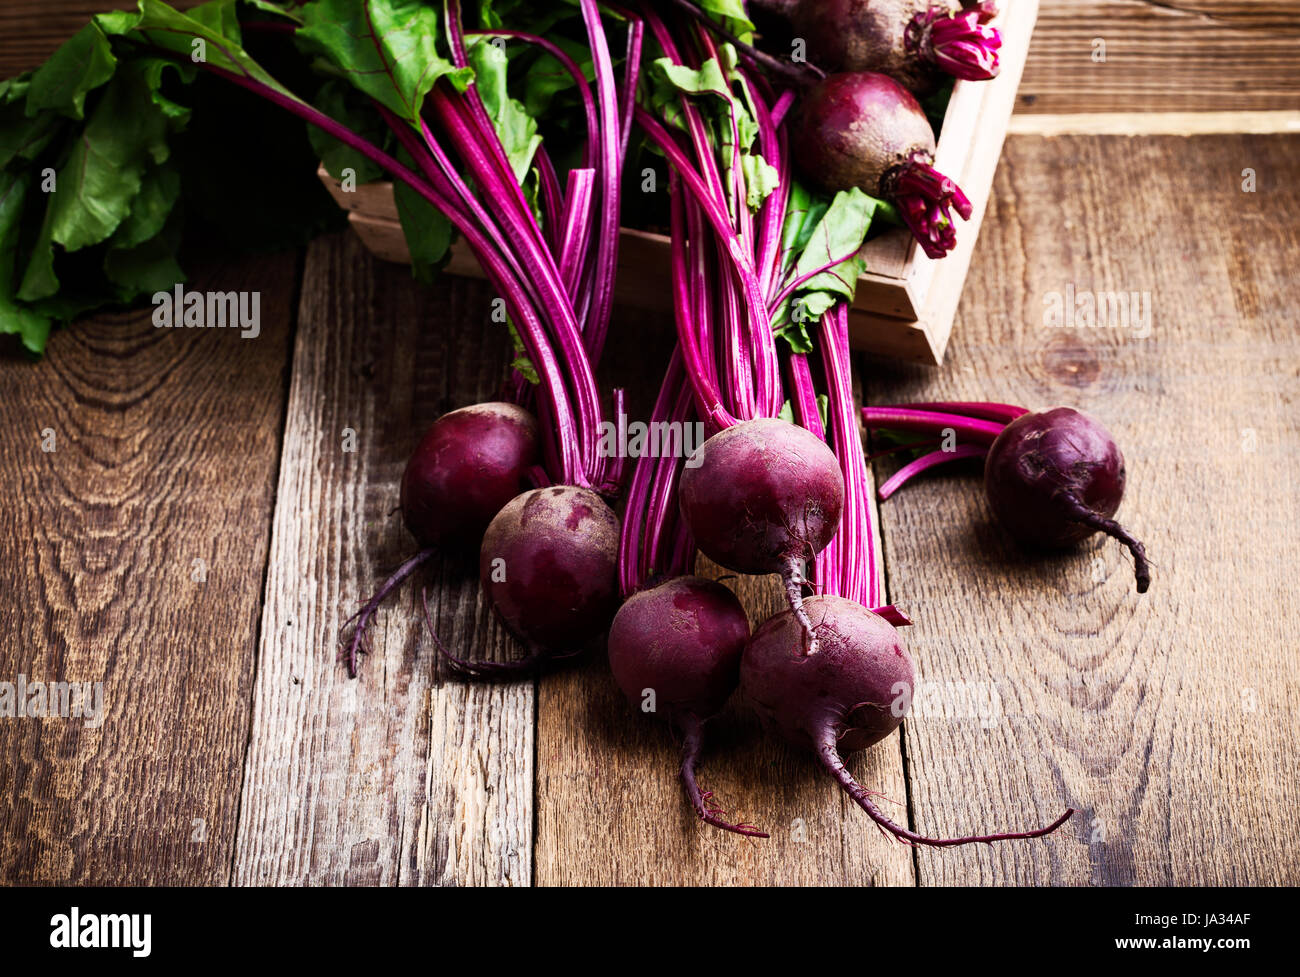 Organic  farm. Fresh beetroot in crate, vegetables on rustic wooden background - Stock Image